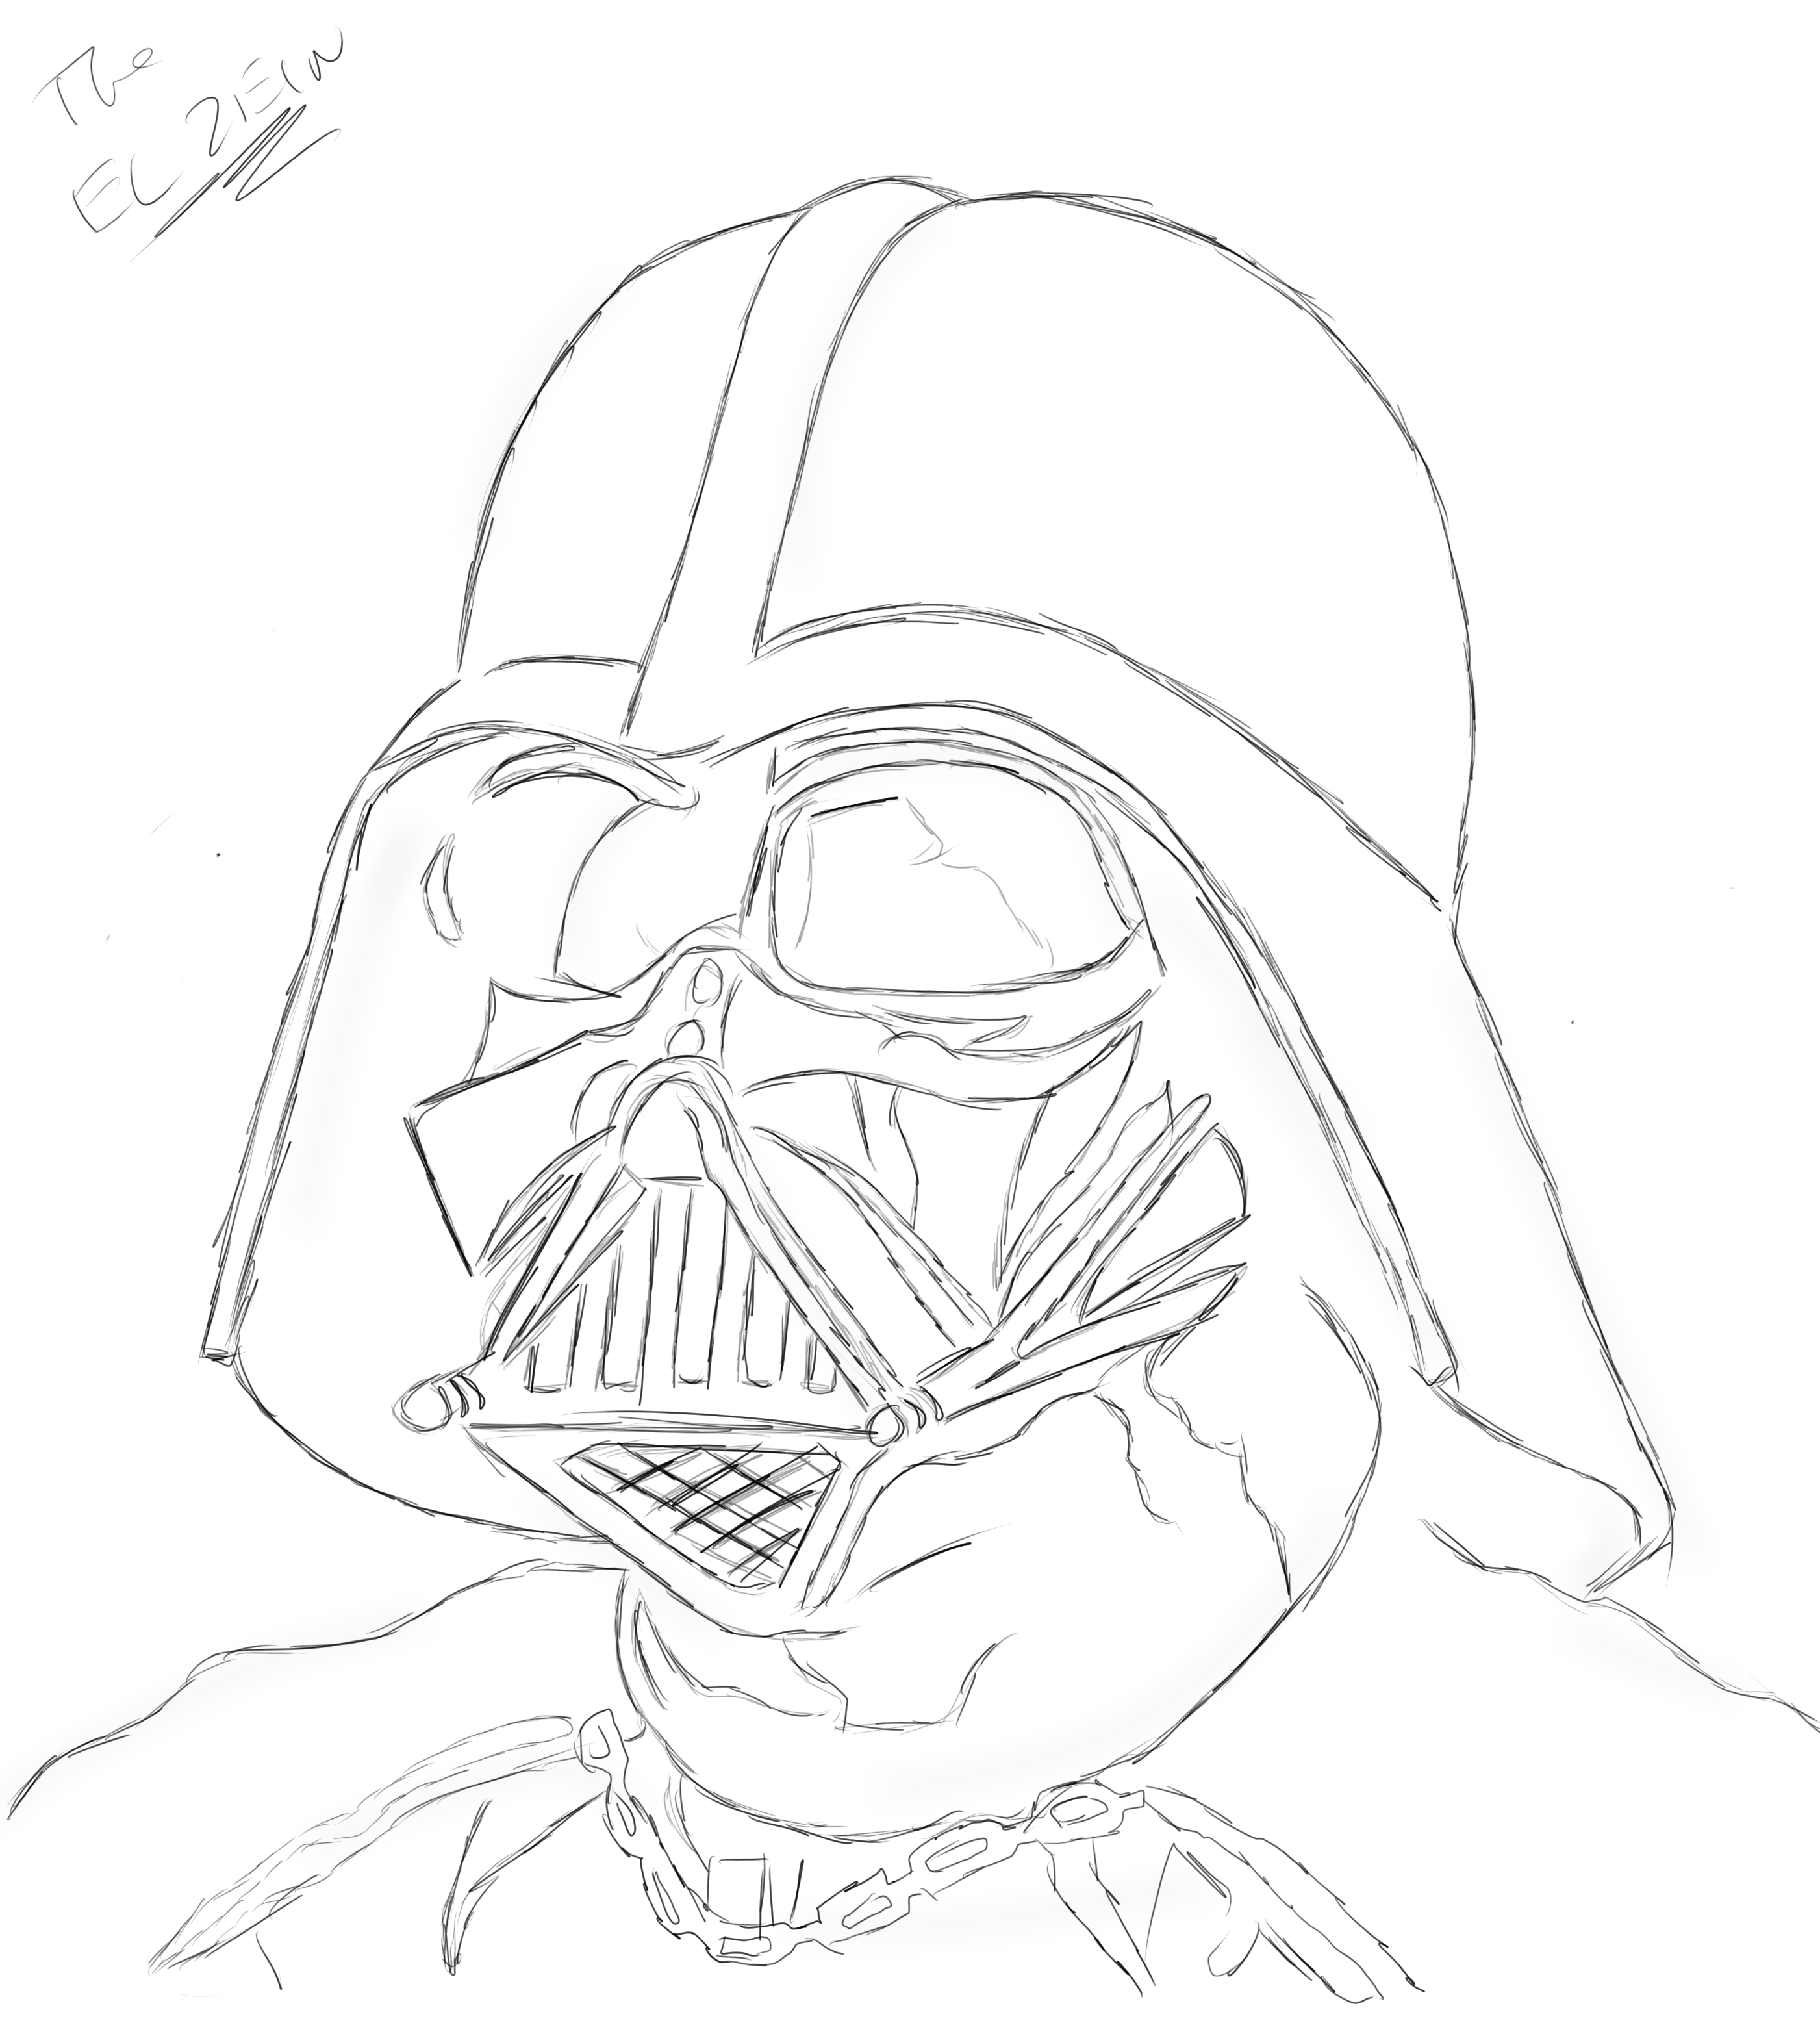 2802x3131 Darth Vader Outline Drawing Darth Vader By Theelzein